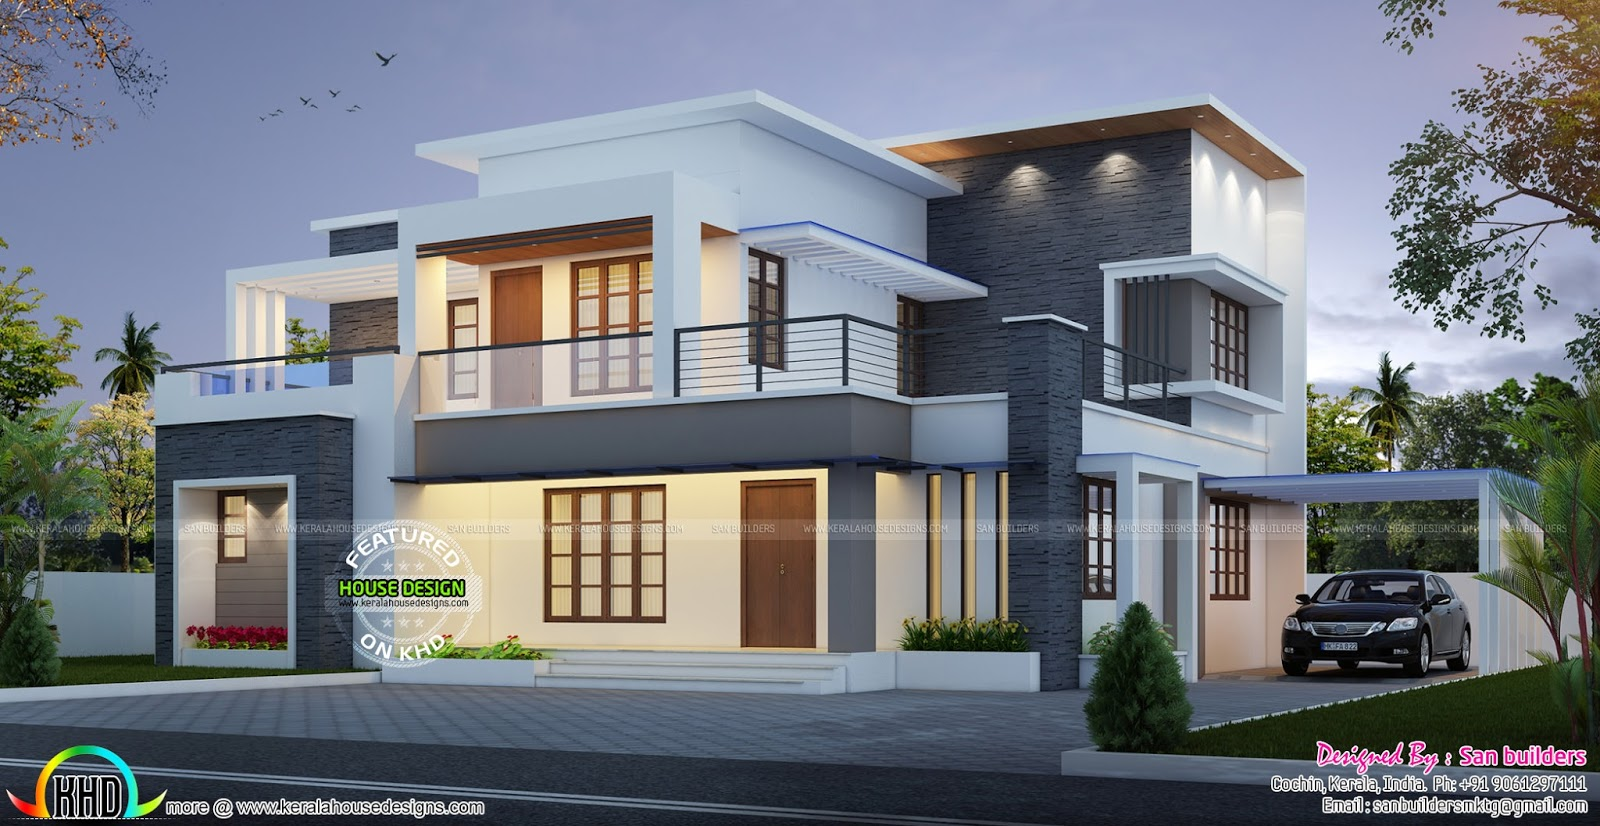 House plan and elevation by san builders kerala home for Contemporary model house